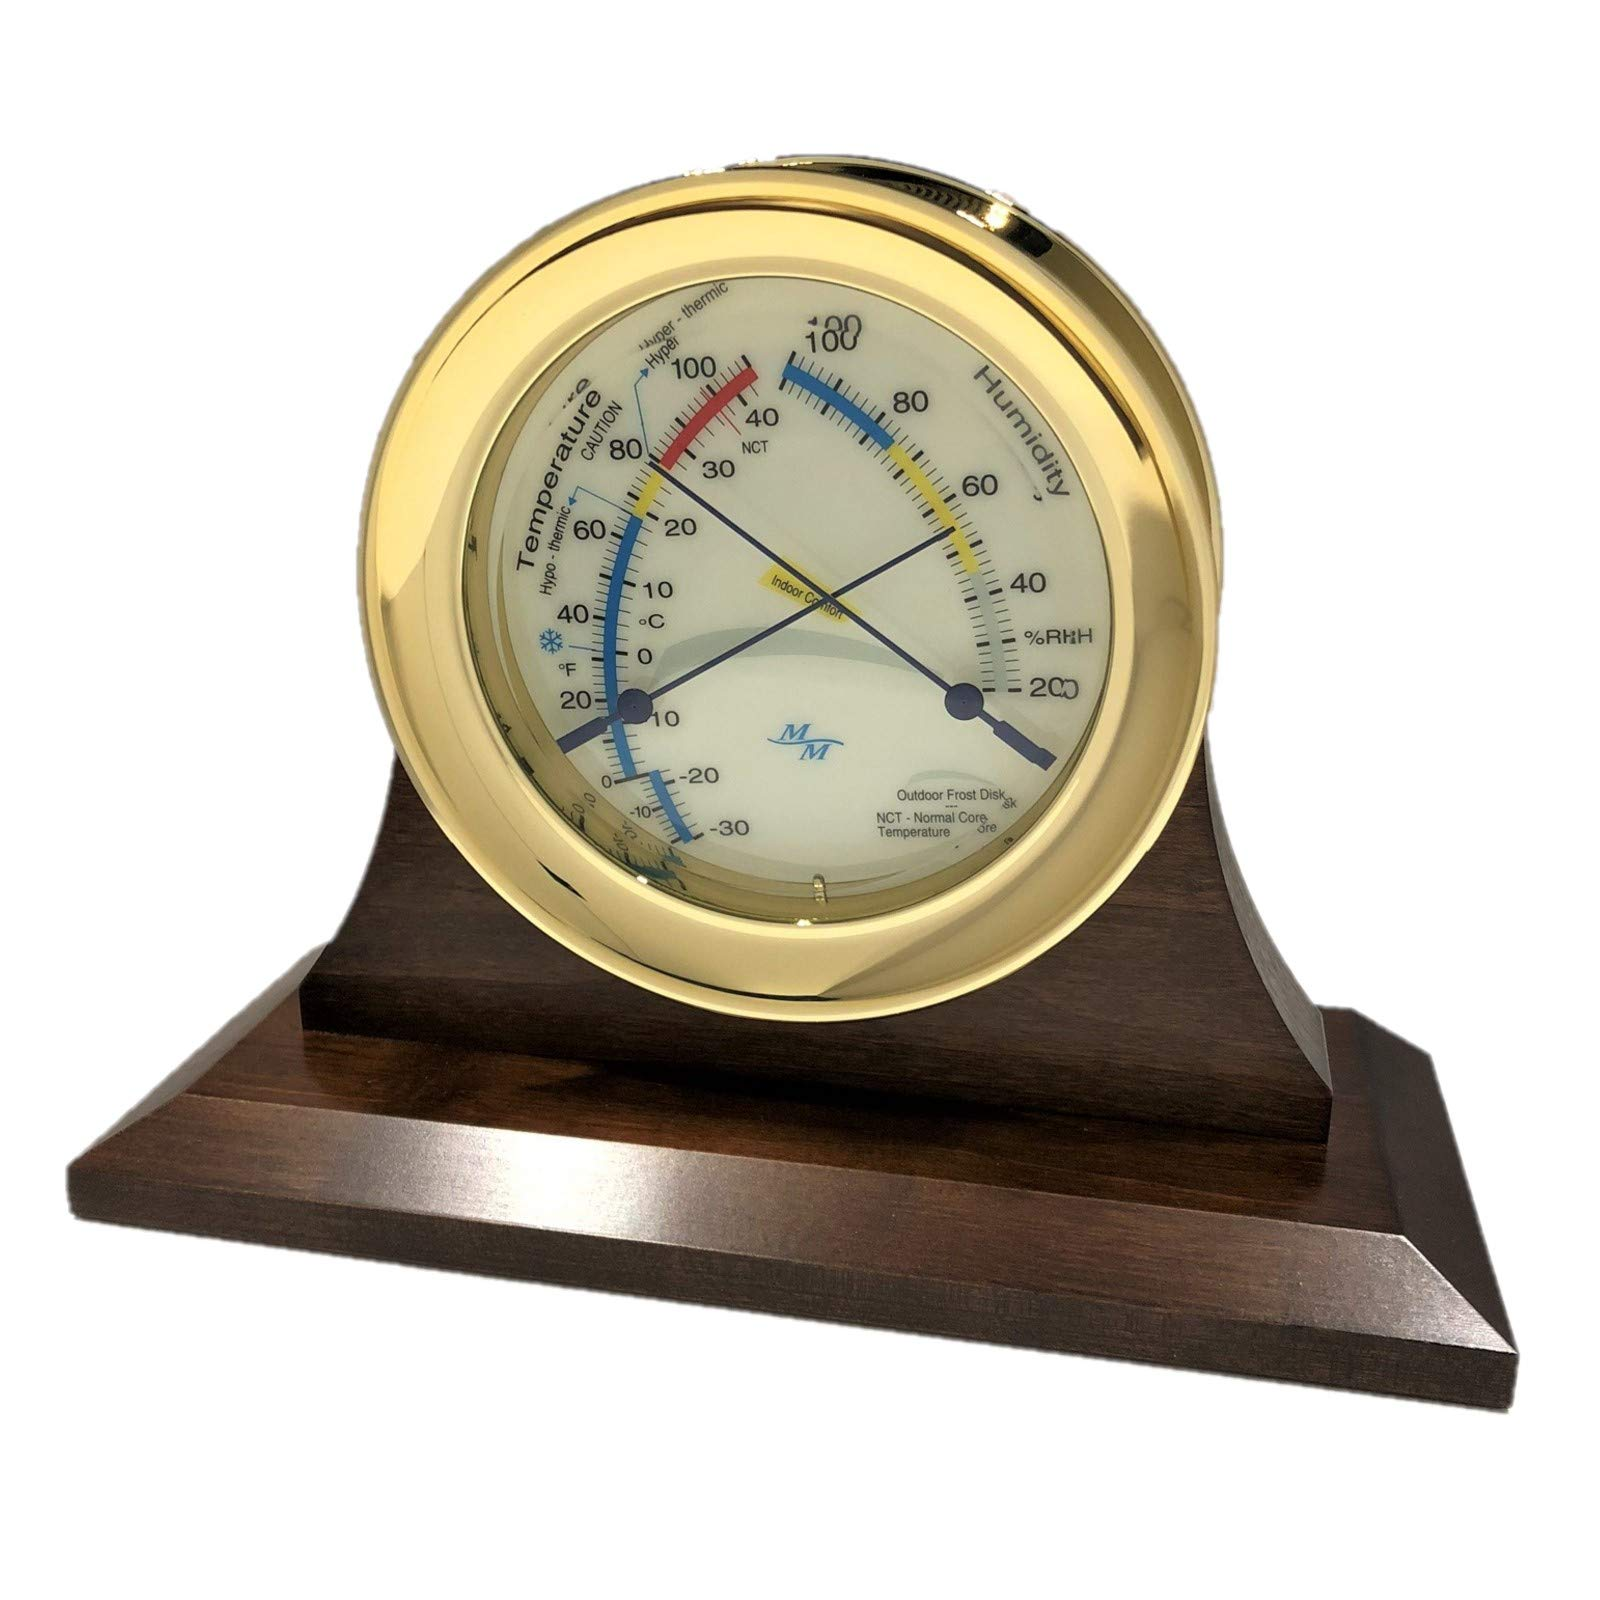 """Master-Mariner American Voyager Collection, Nautical Windlass Comfort Meter, 5.85"""", Gold Finish, Ivory Signal Flag dial and Single Cradle Base, Walnut Finish with Silvertone and Goldtone Nameplates"""